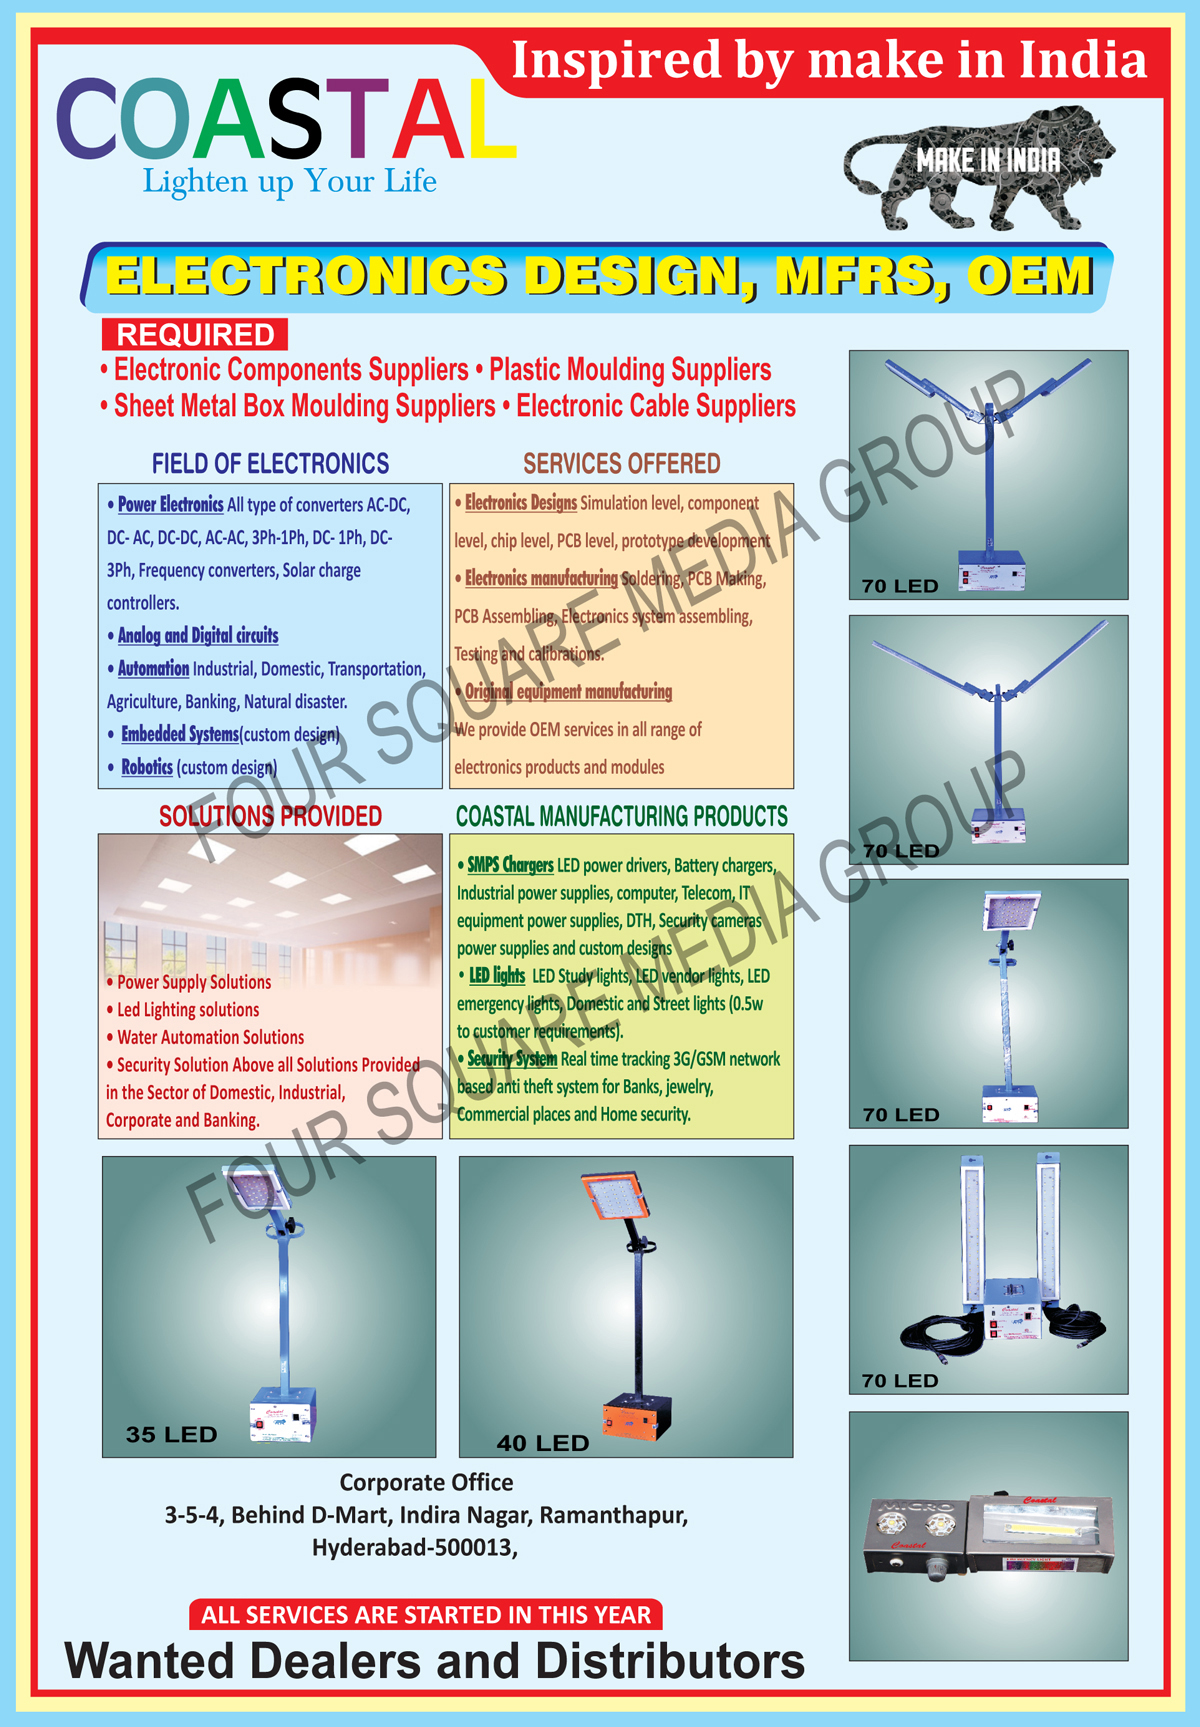 Led Lights, SMPS Chargers, Led Power Drivers, Battery Chargers, Industrial Power Supplies, Computer Power Supplies, Telecom Power Supplies, IT Equipment Power Supplies, DTH Power Supplies, Security Power Supplies, Led Lights, Led Study Lights, Led Vendor Lights, Led Emergency Lights, Led Street Lights, Led Domestic Lights, Security Systems, AC to DC Converters, DC to AC Converters, DC to DC Converters, AC to AC Converters, Solar Charger Controllers, Analog Circuits, Digital Circuits, Embedded Systems, Robotics, Electronics Designs, Soldering, Printed Circuit Board Making, Printed Circuit Board Assemblies, 3G Network Based Anti Theft Systems, GSM Network Based Anti Theft Systems, Automation Services, Industrial Automations, Domestic Automations, Transportation Automations, Agriculture Automations, Banking Automations, Natural Disaster Automations, Frequency Converters, Led Hospital Signs, Led Pharmacy Signs